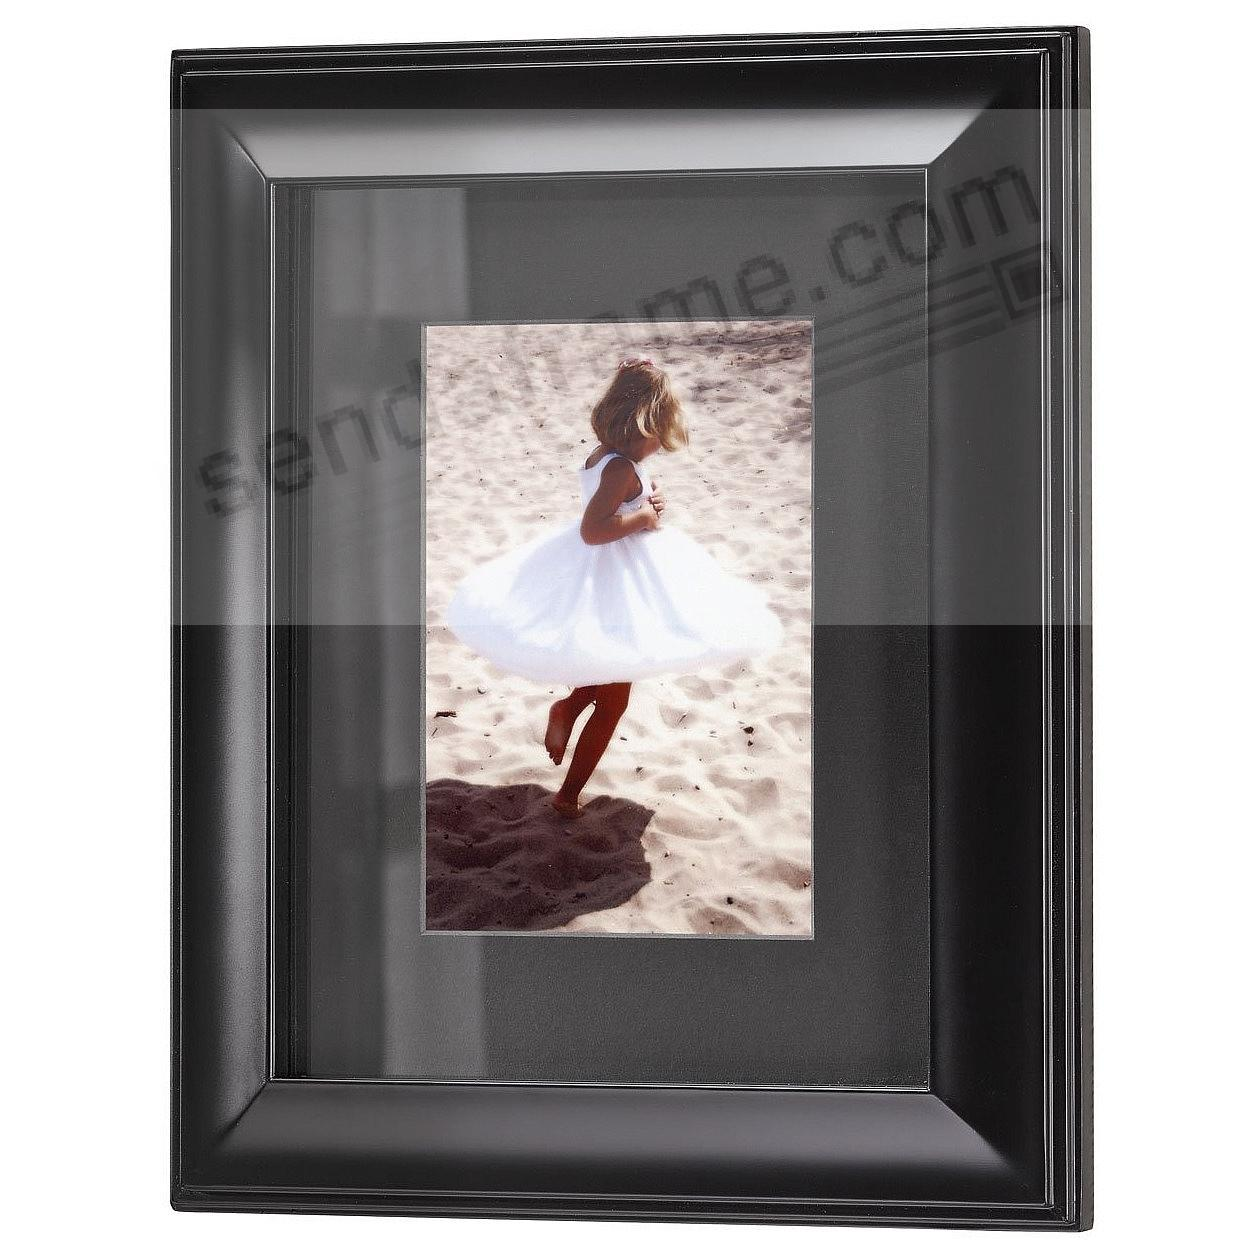 hudson black matted ebony black wood frame 16x20 11x14 from artcare